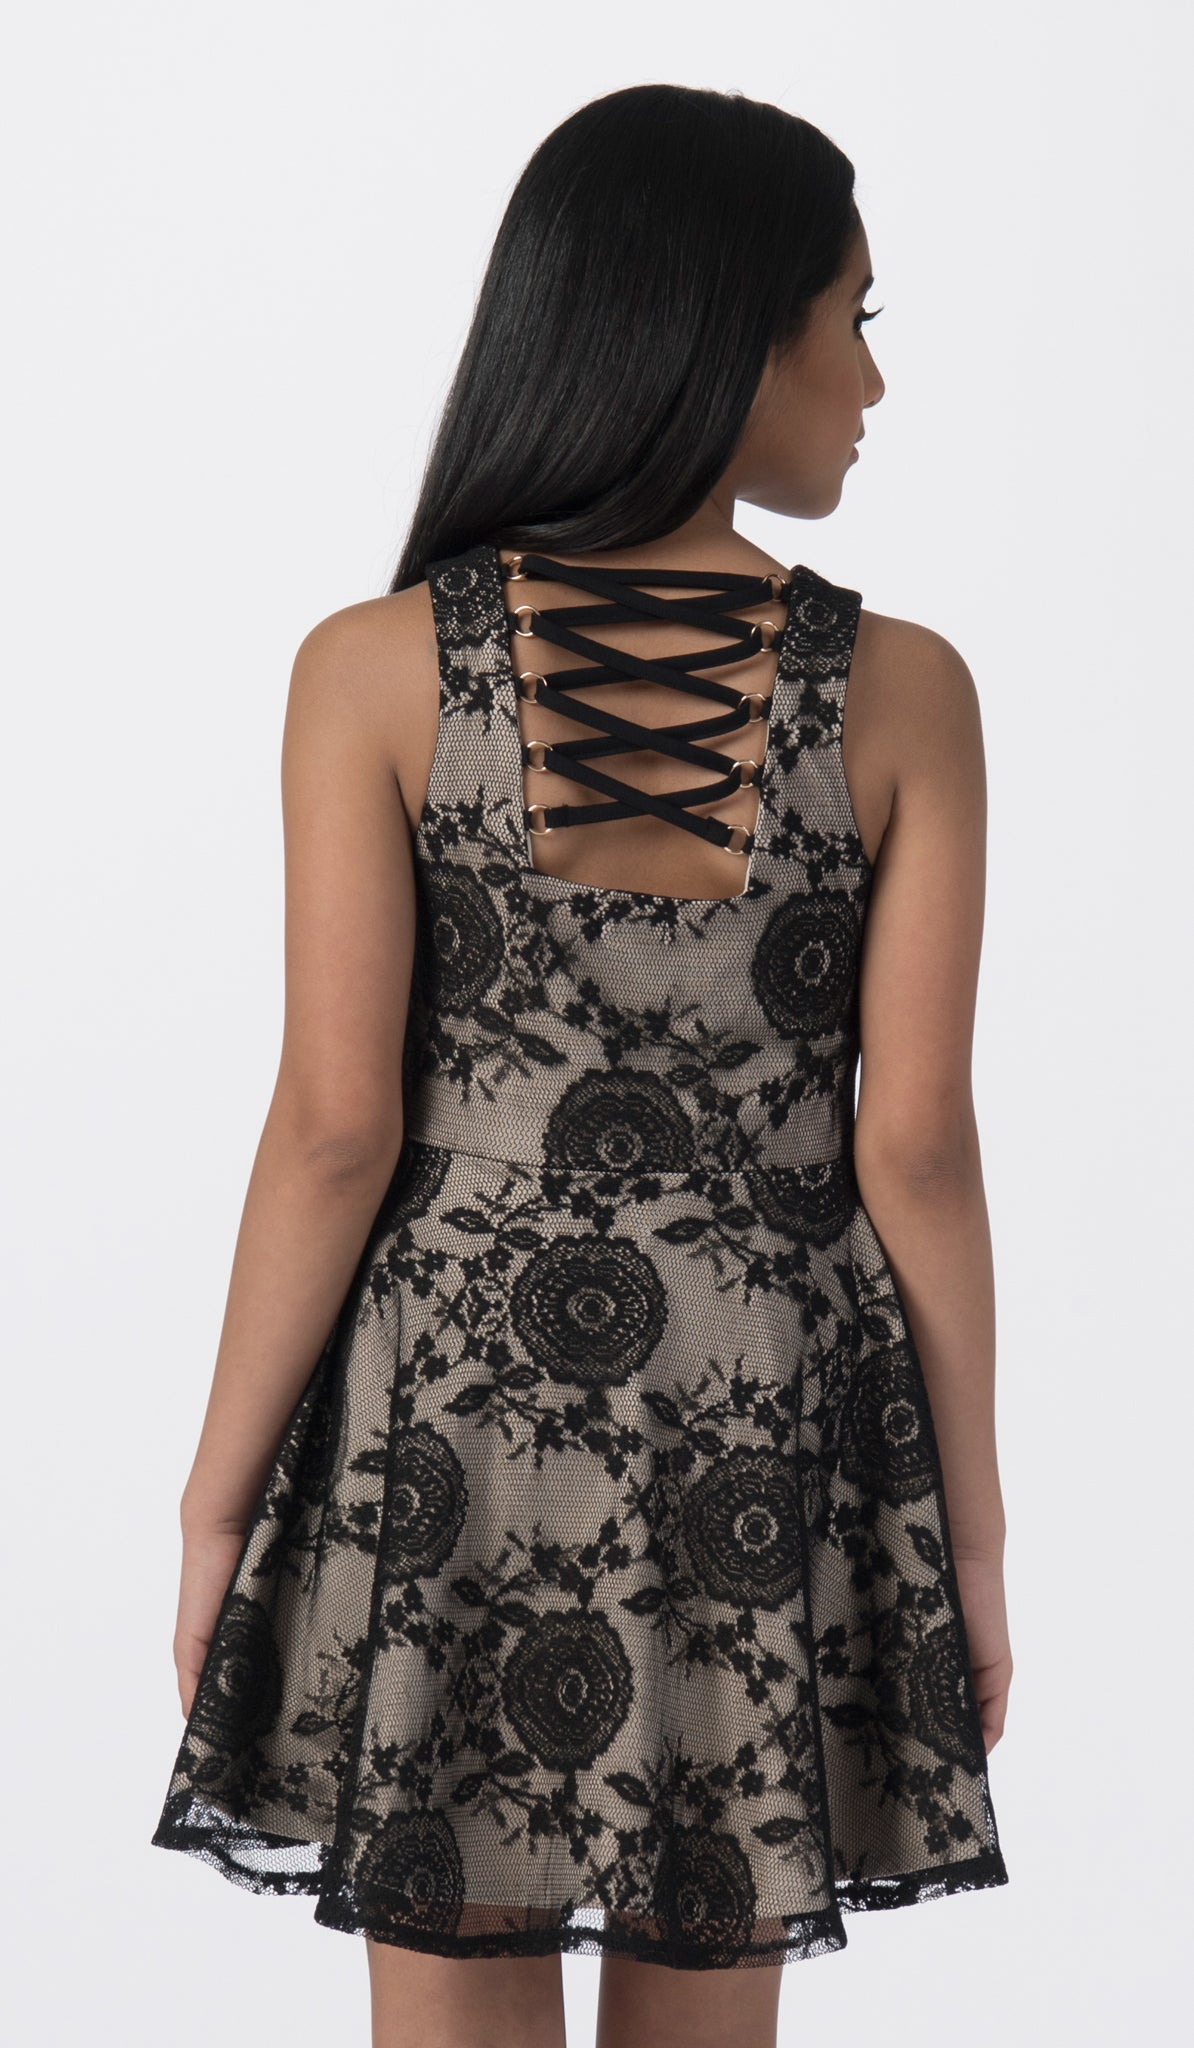 Sally Miller black lace fit and flare special occasion dress back view.